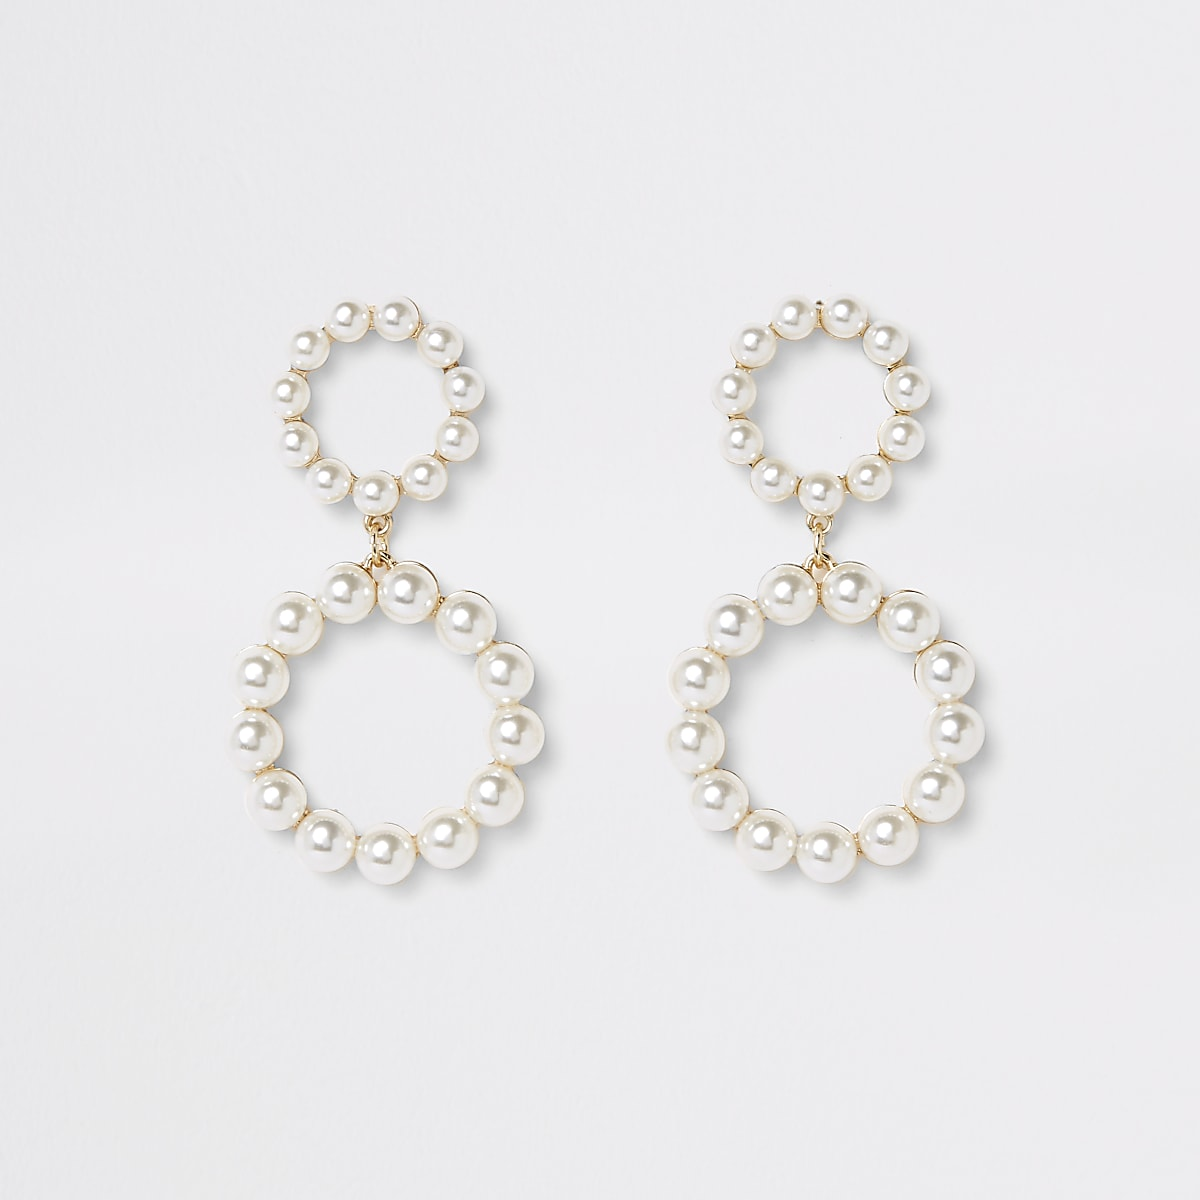 Gold color pearl double ring drop earrings